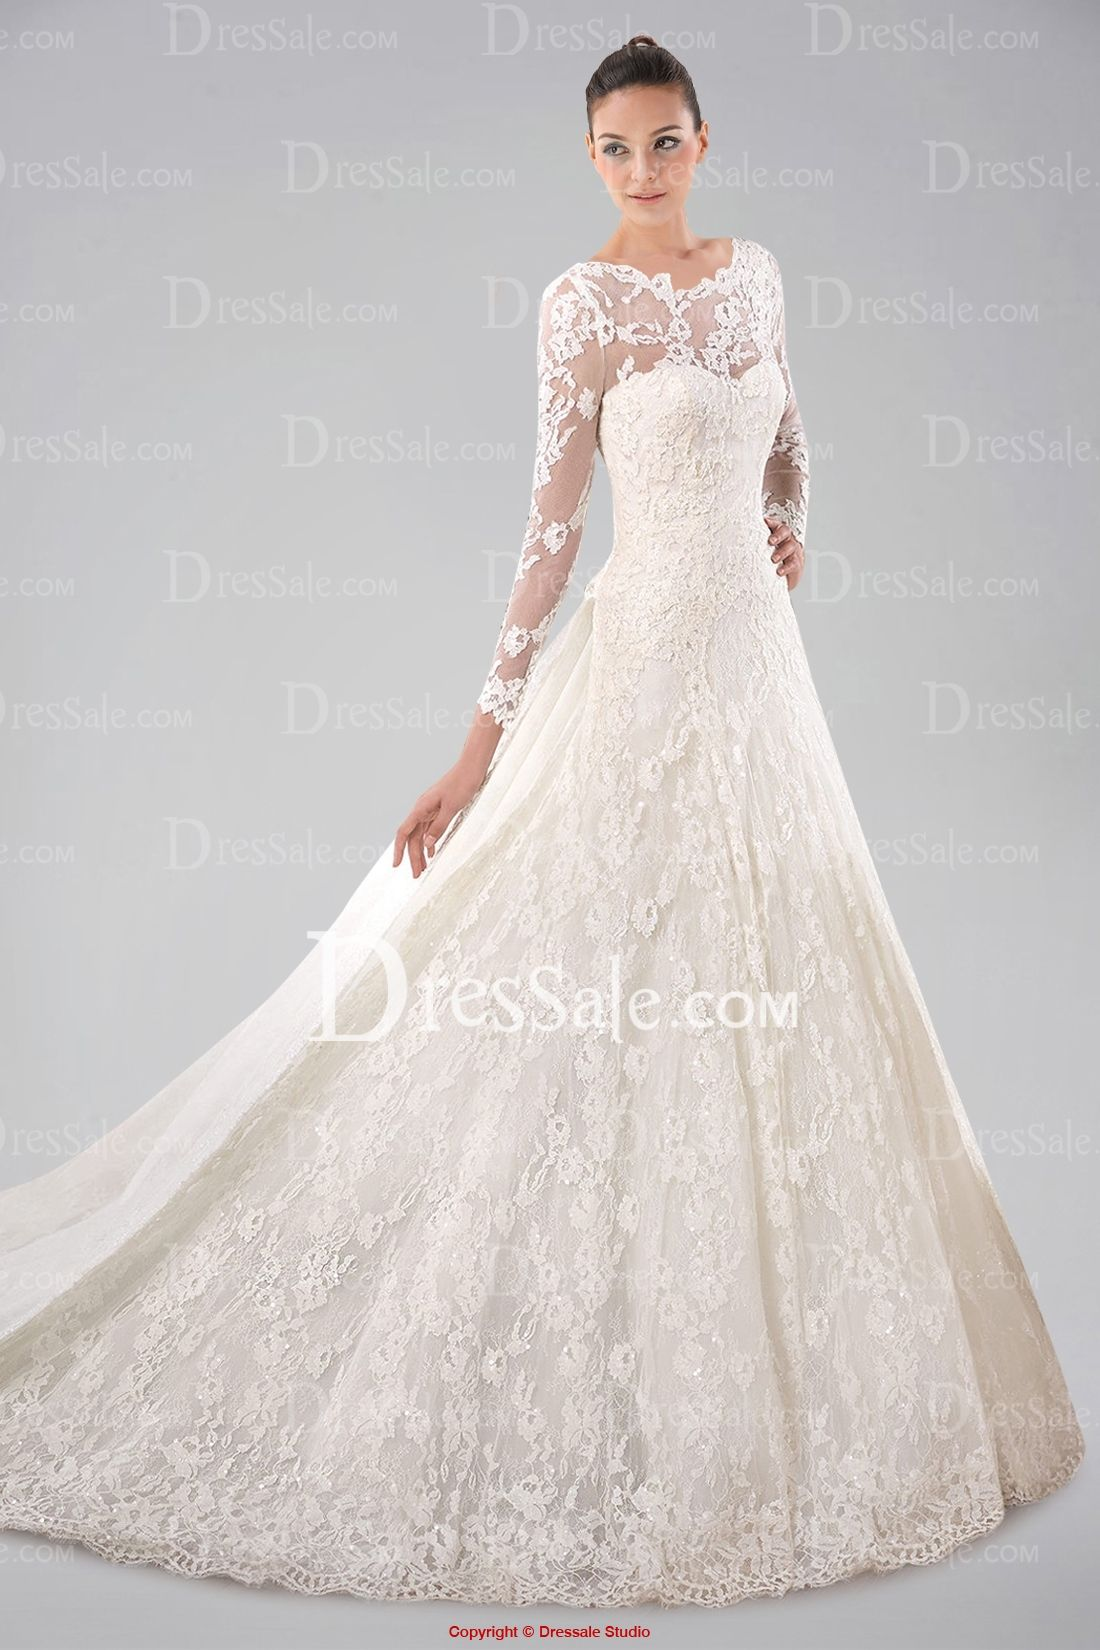 Shop lace long sleeve wedding dresses online dressale long